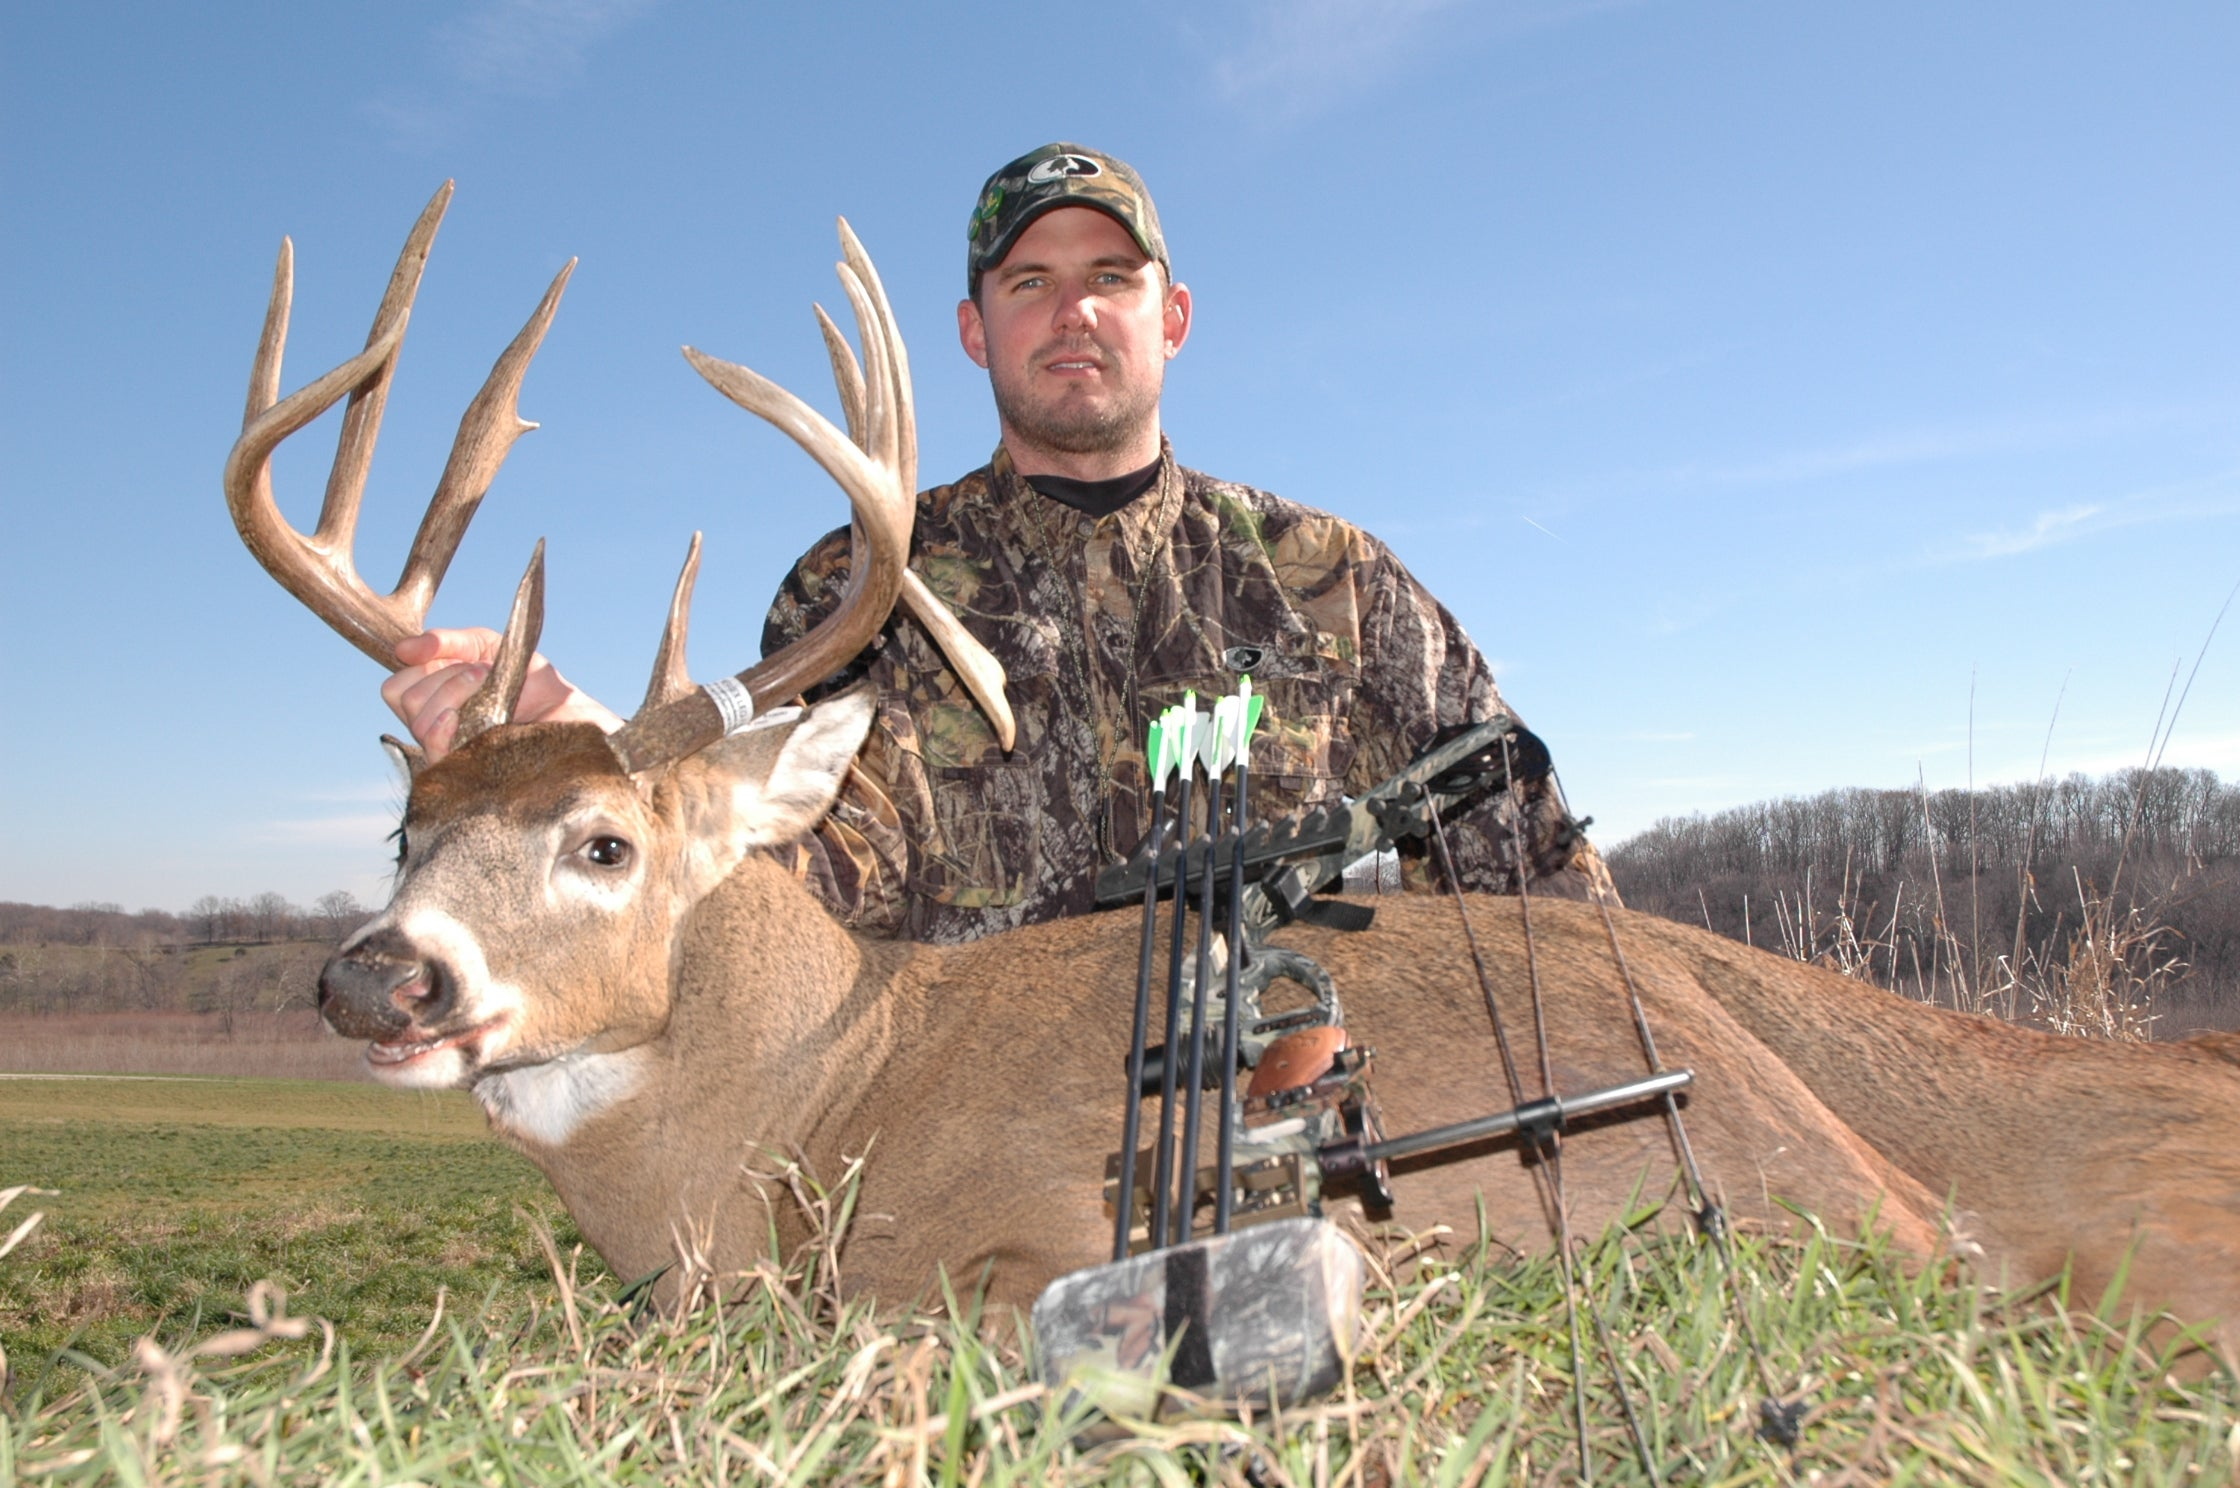 Bowhunting Tips: 4 Bow Stand Setups You Should Avoid This Season